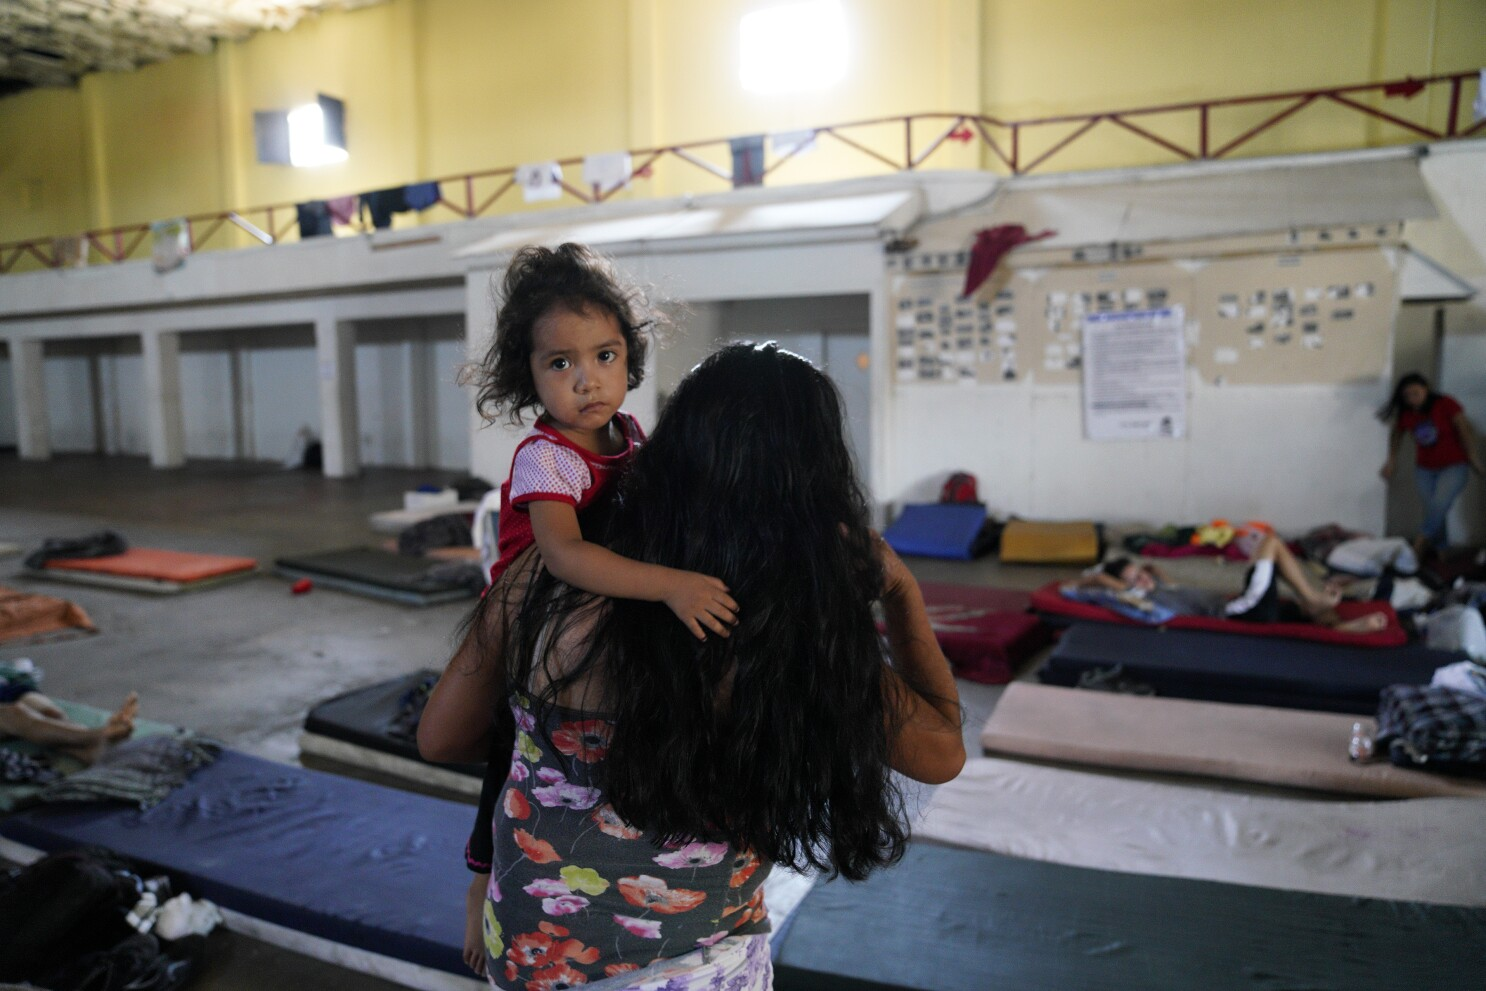 Asylum-seekers report theft, exploitation in Mexicali's migrant shelters